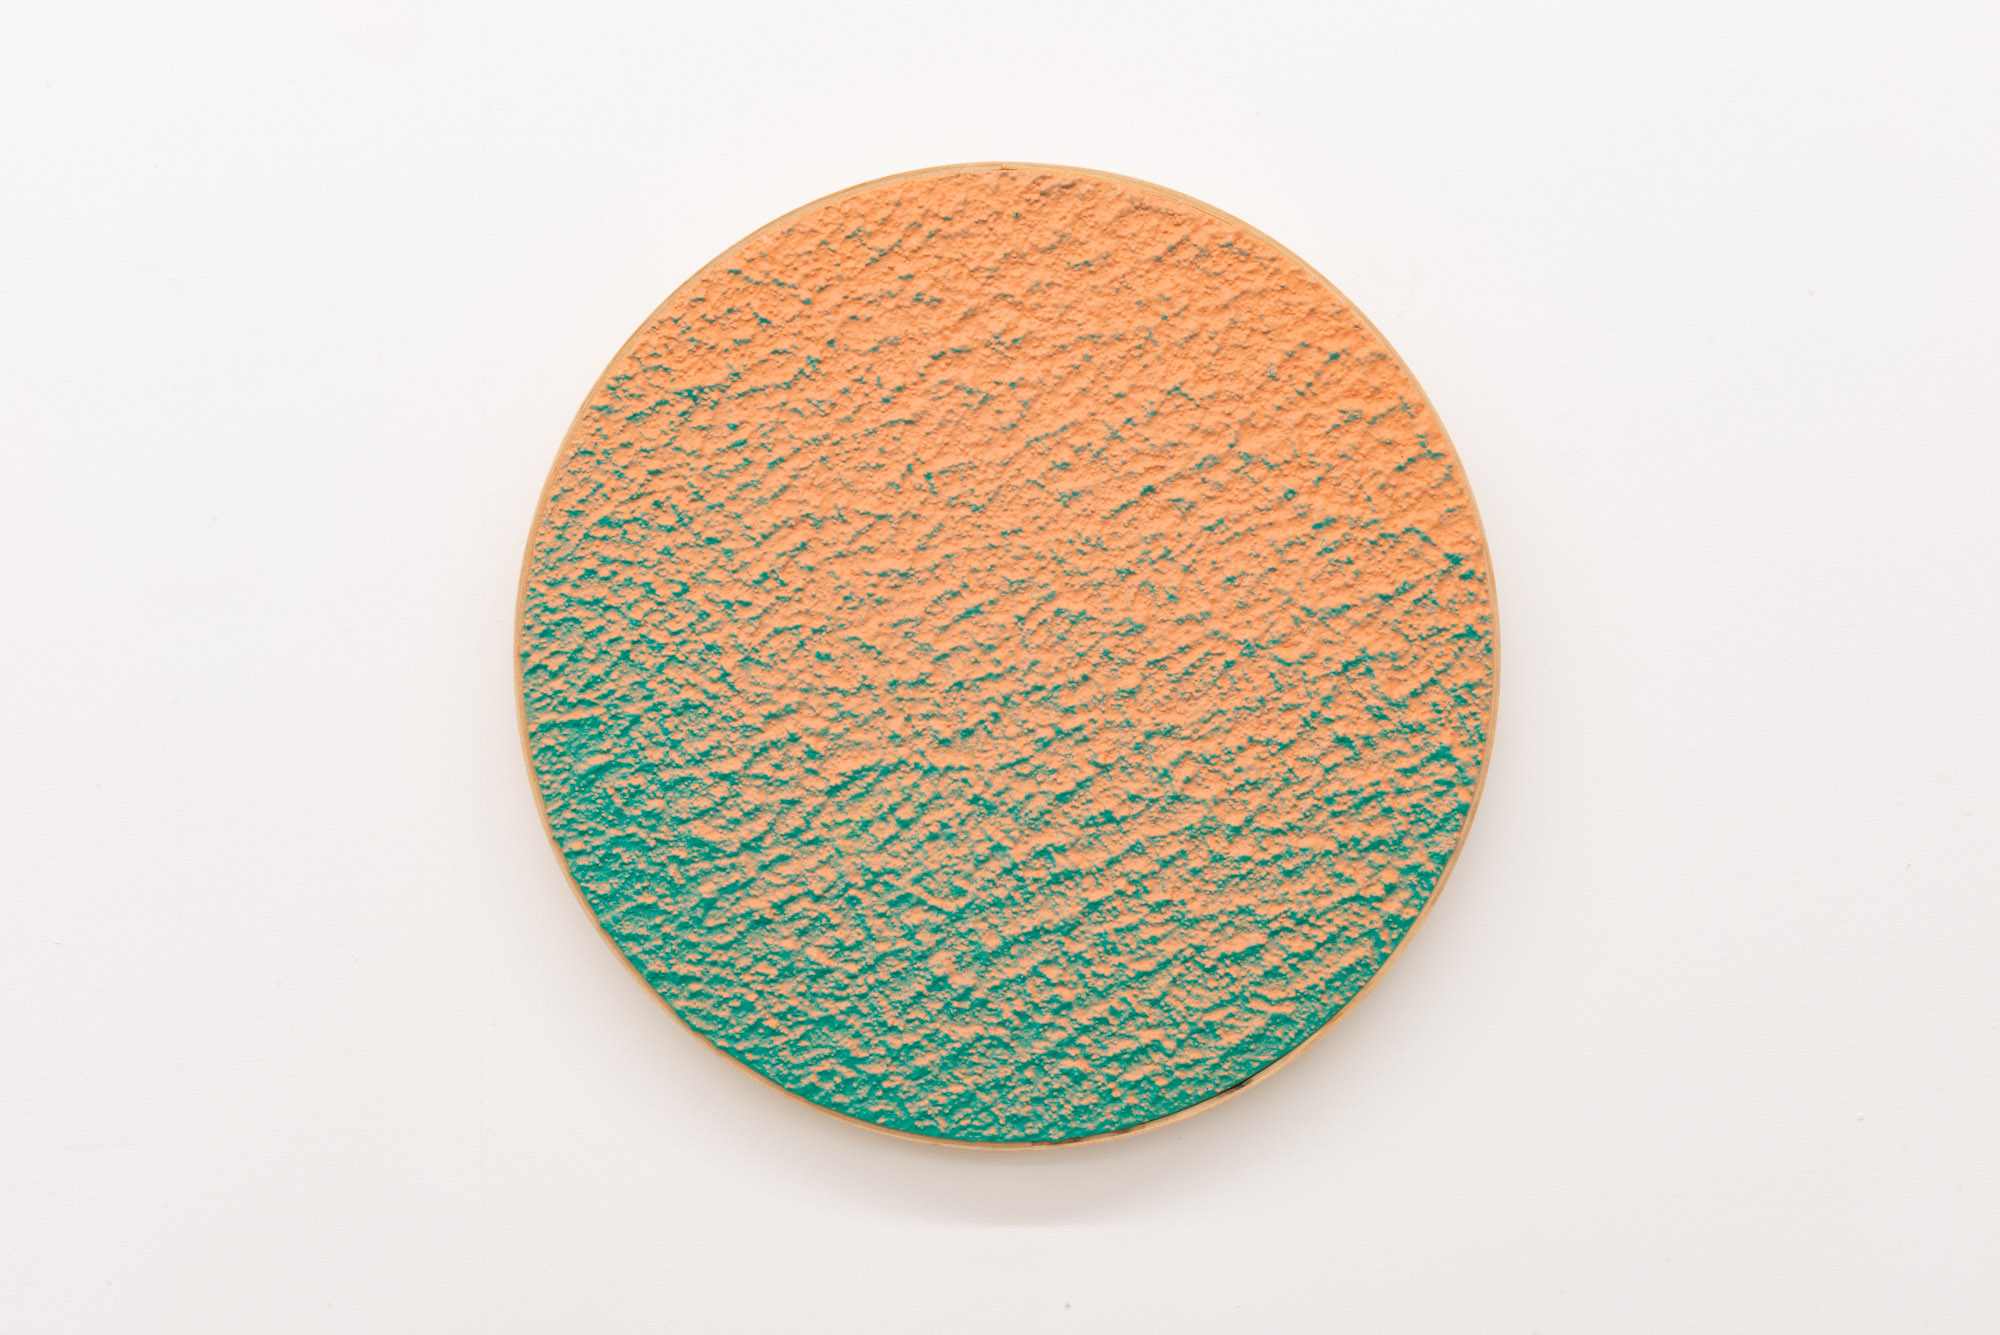 """Pierre Julien,  In the Deepest Oceans  - B012, 2018, stucco, acrylic and spray paint on wood panel, 16"""" diameter (41 cm)"""